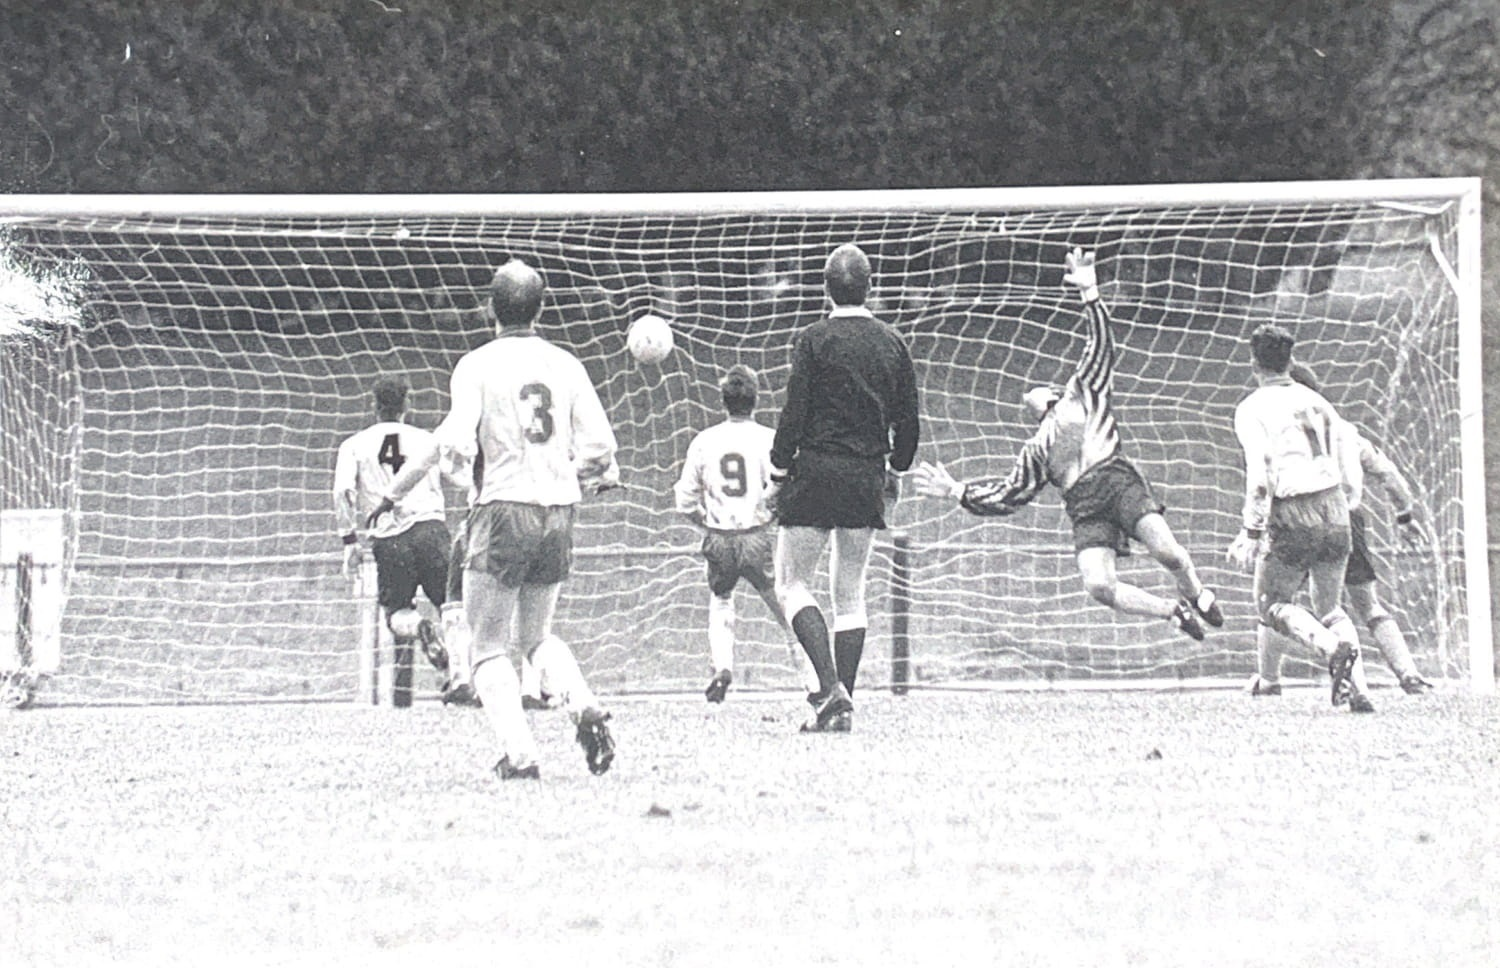 Archive: Relive some football memories from the past few decades